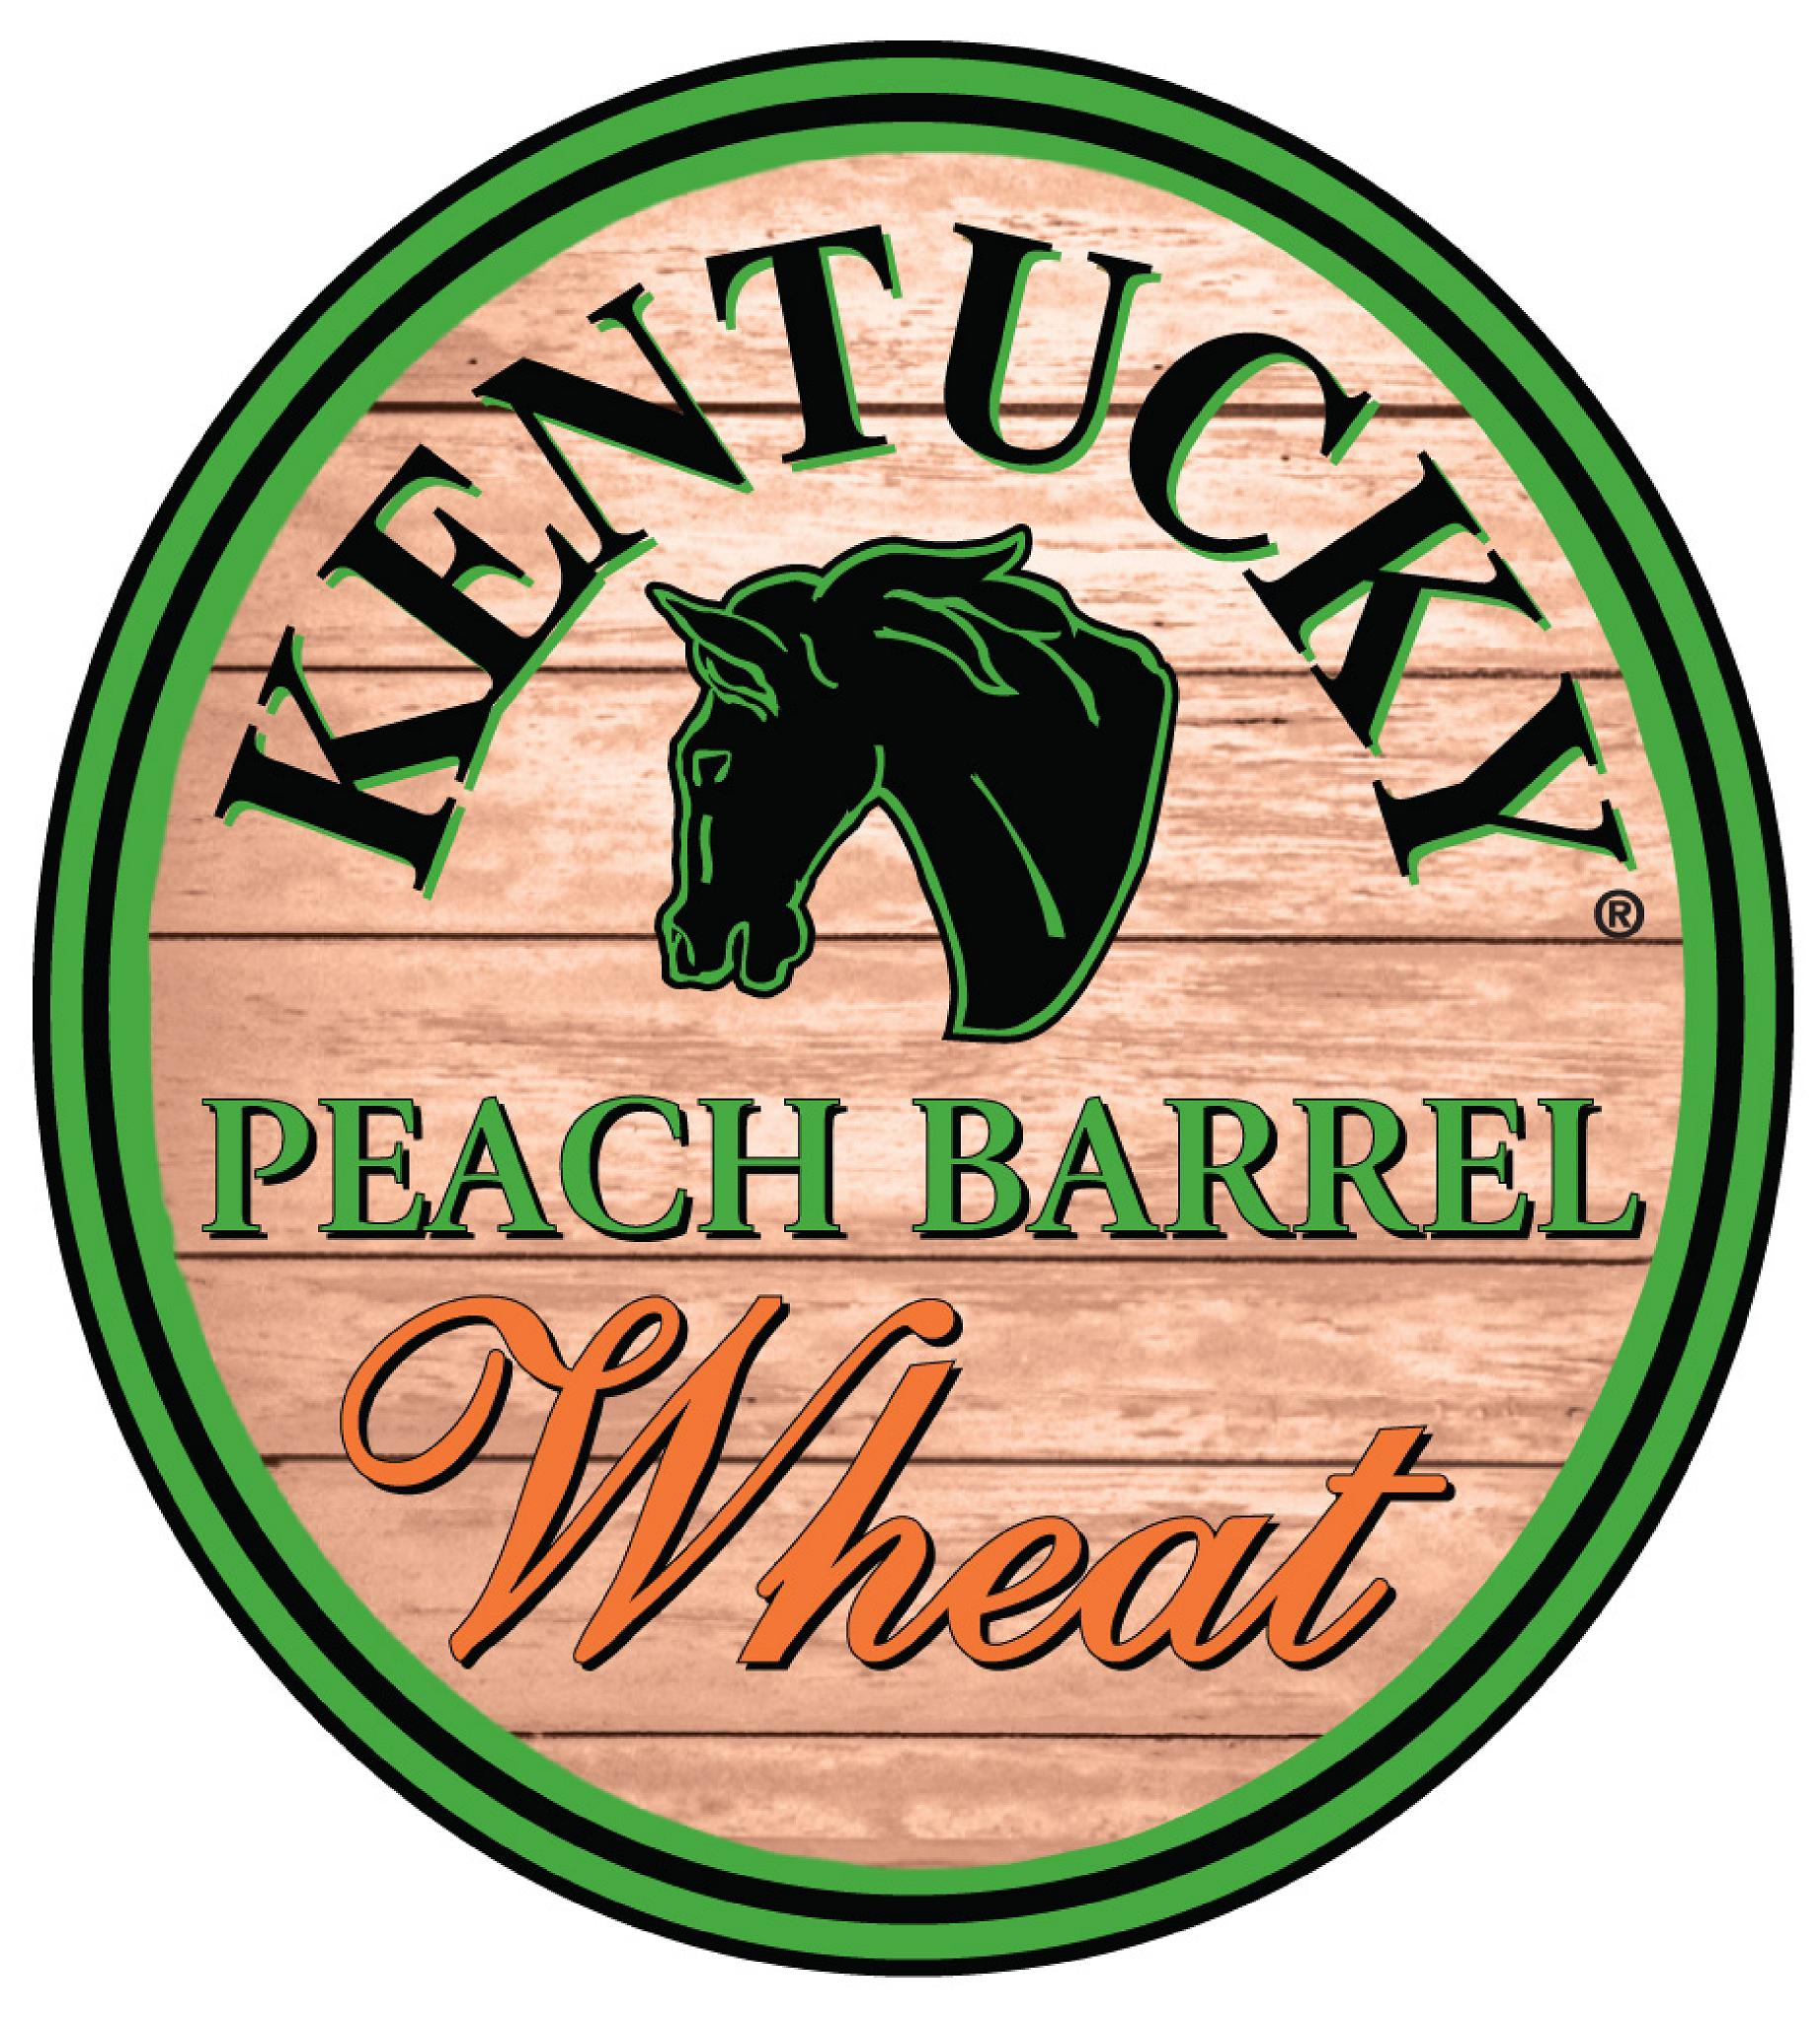 Ky Peach Barrel Wheat